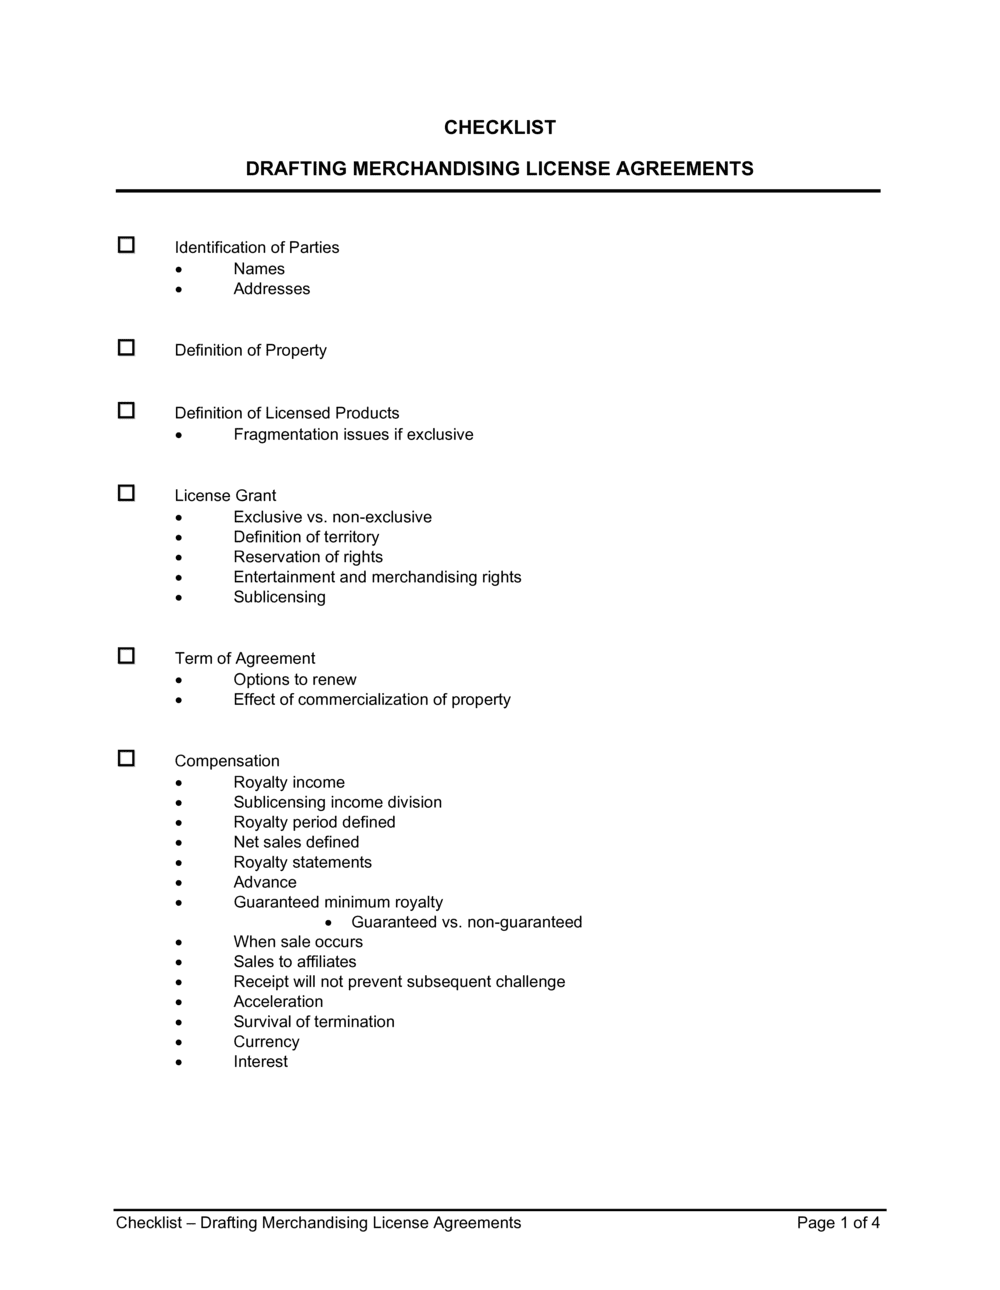 Business-in-a-Box's Checklist Drafting Merchandising License Agreements Template